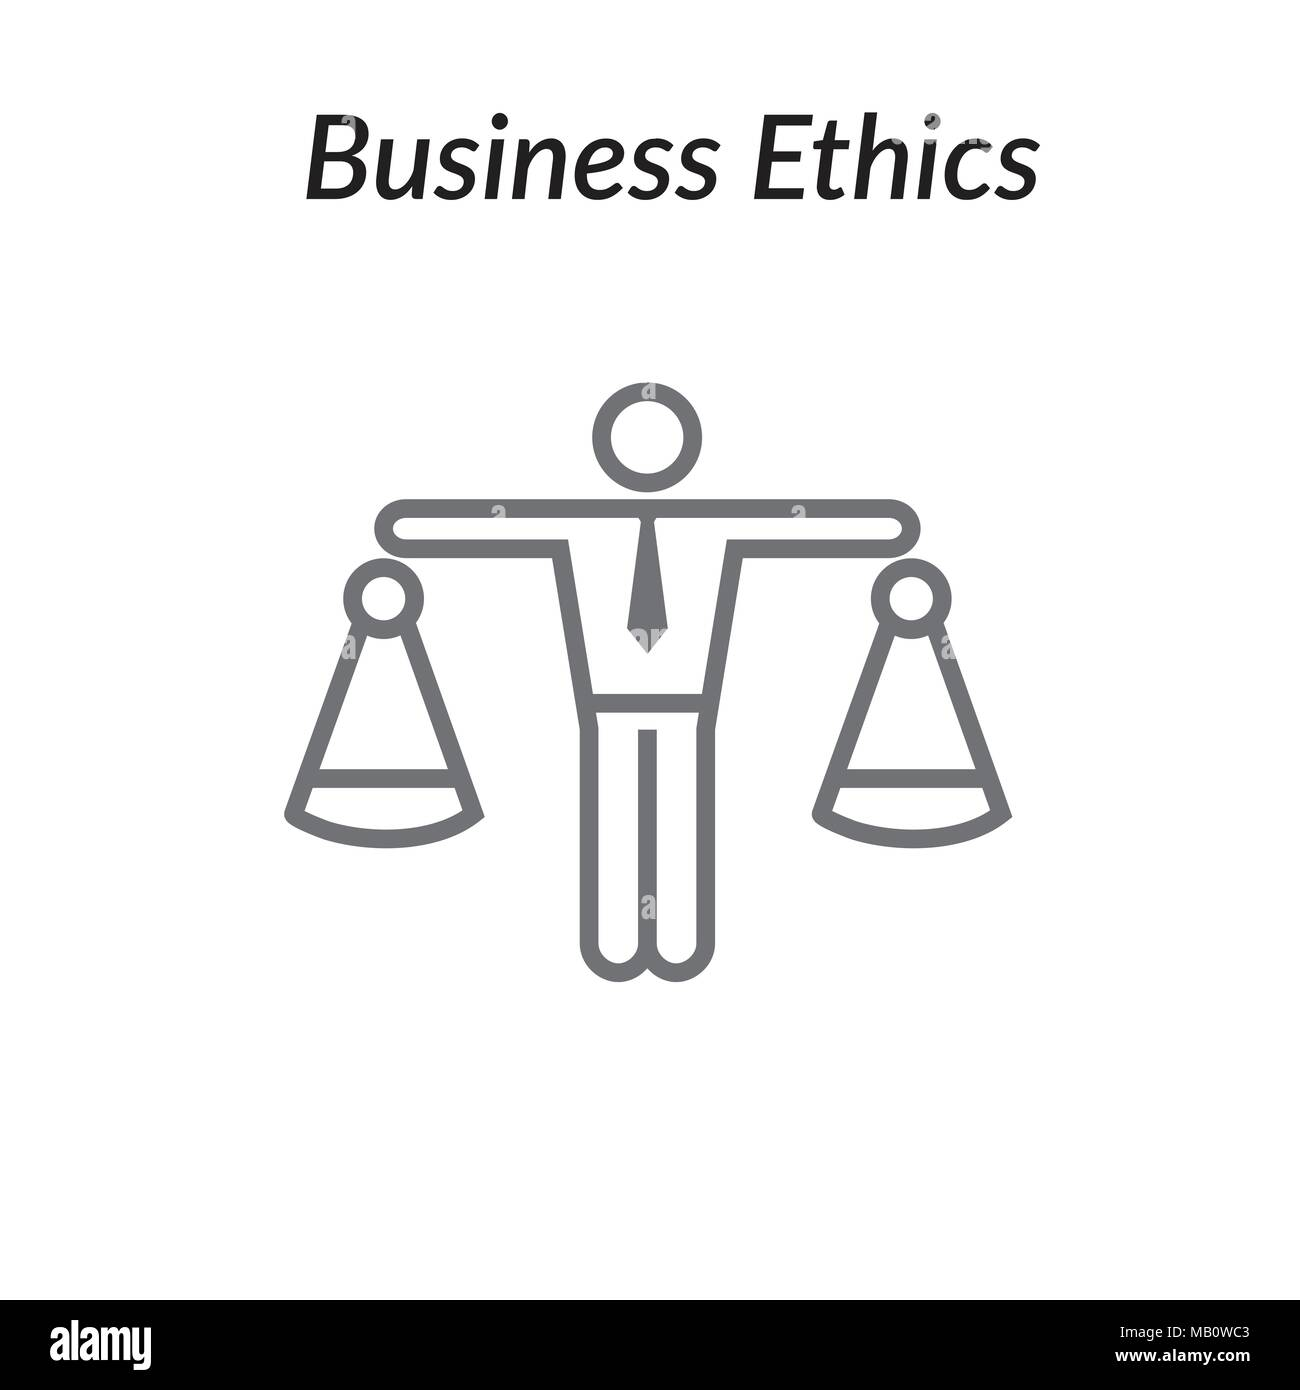 Business Ethics Solid Icon with Man and Scales of Justice - Stock Image